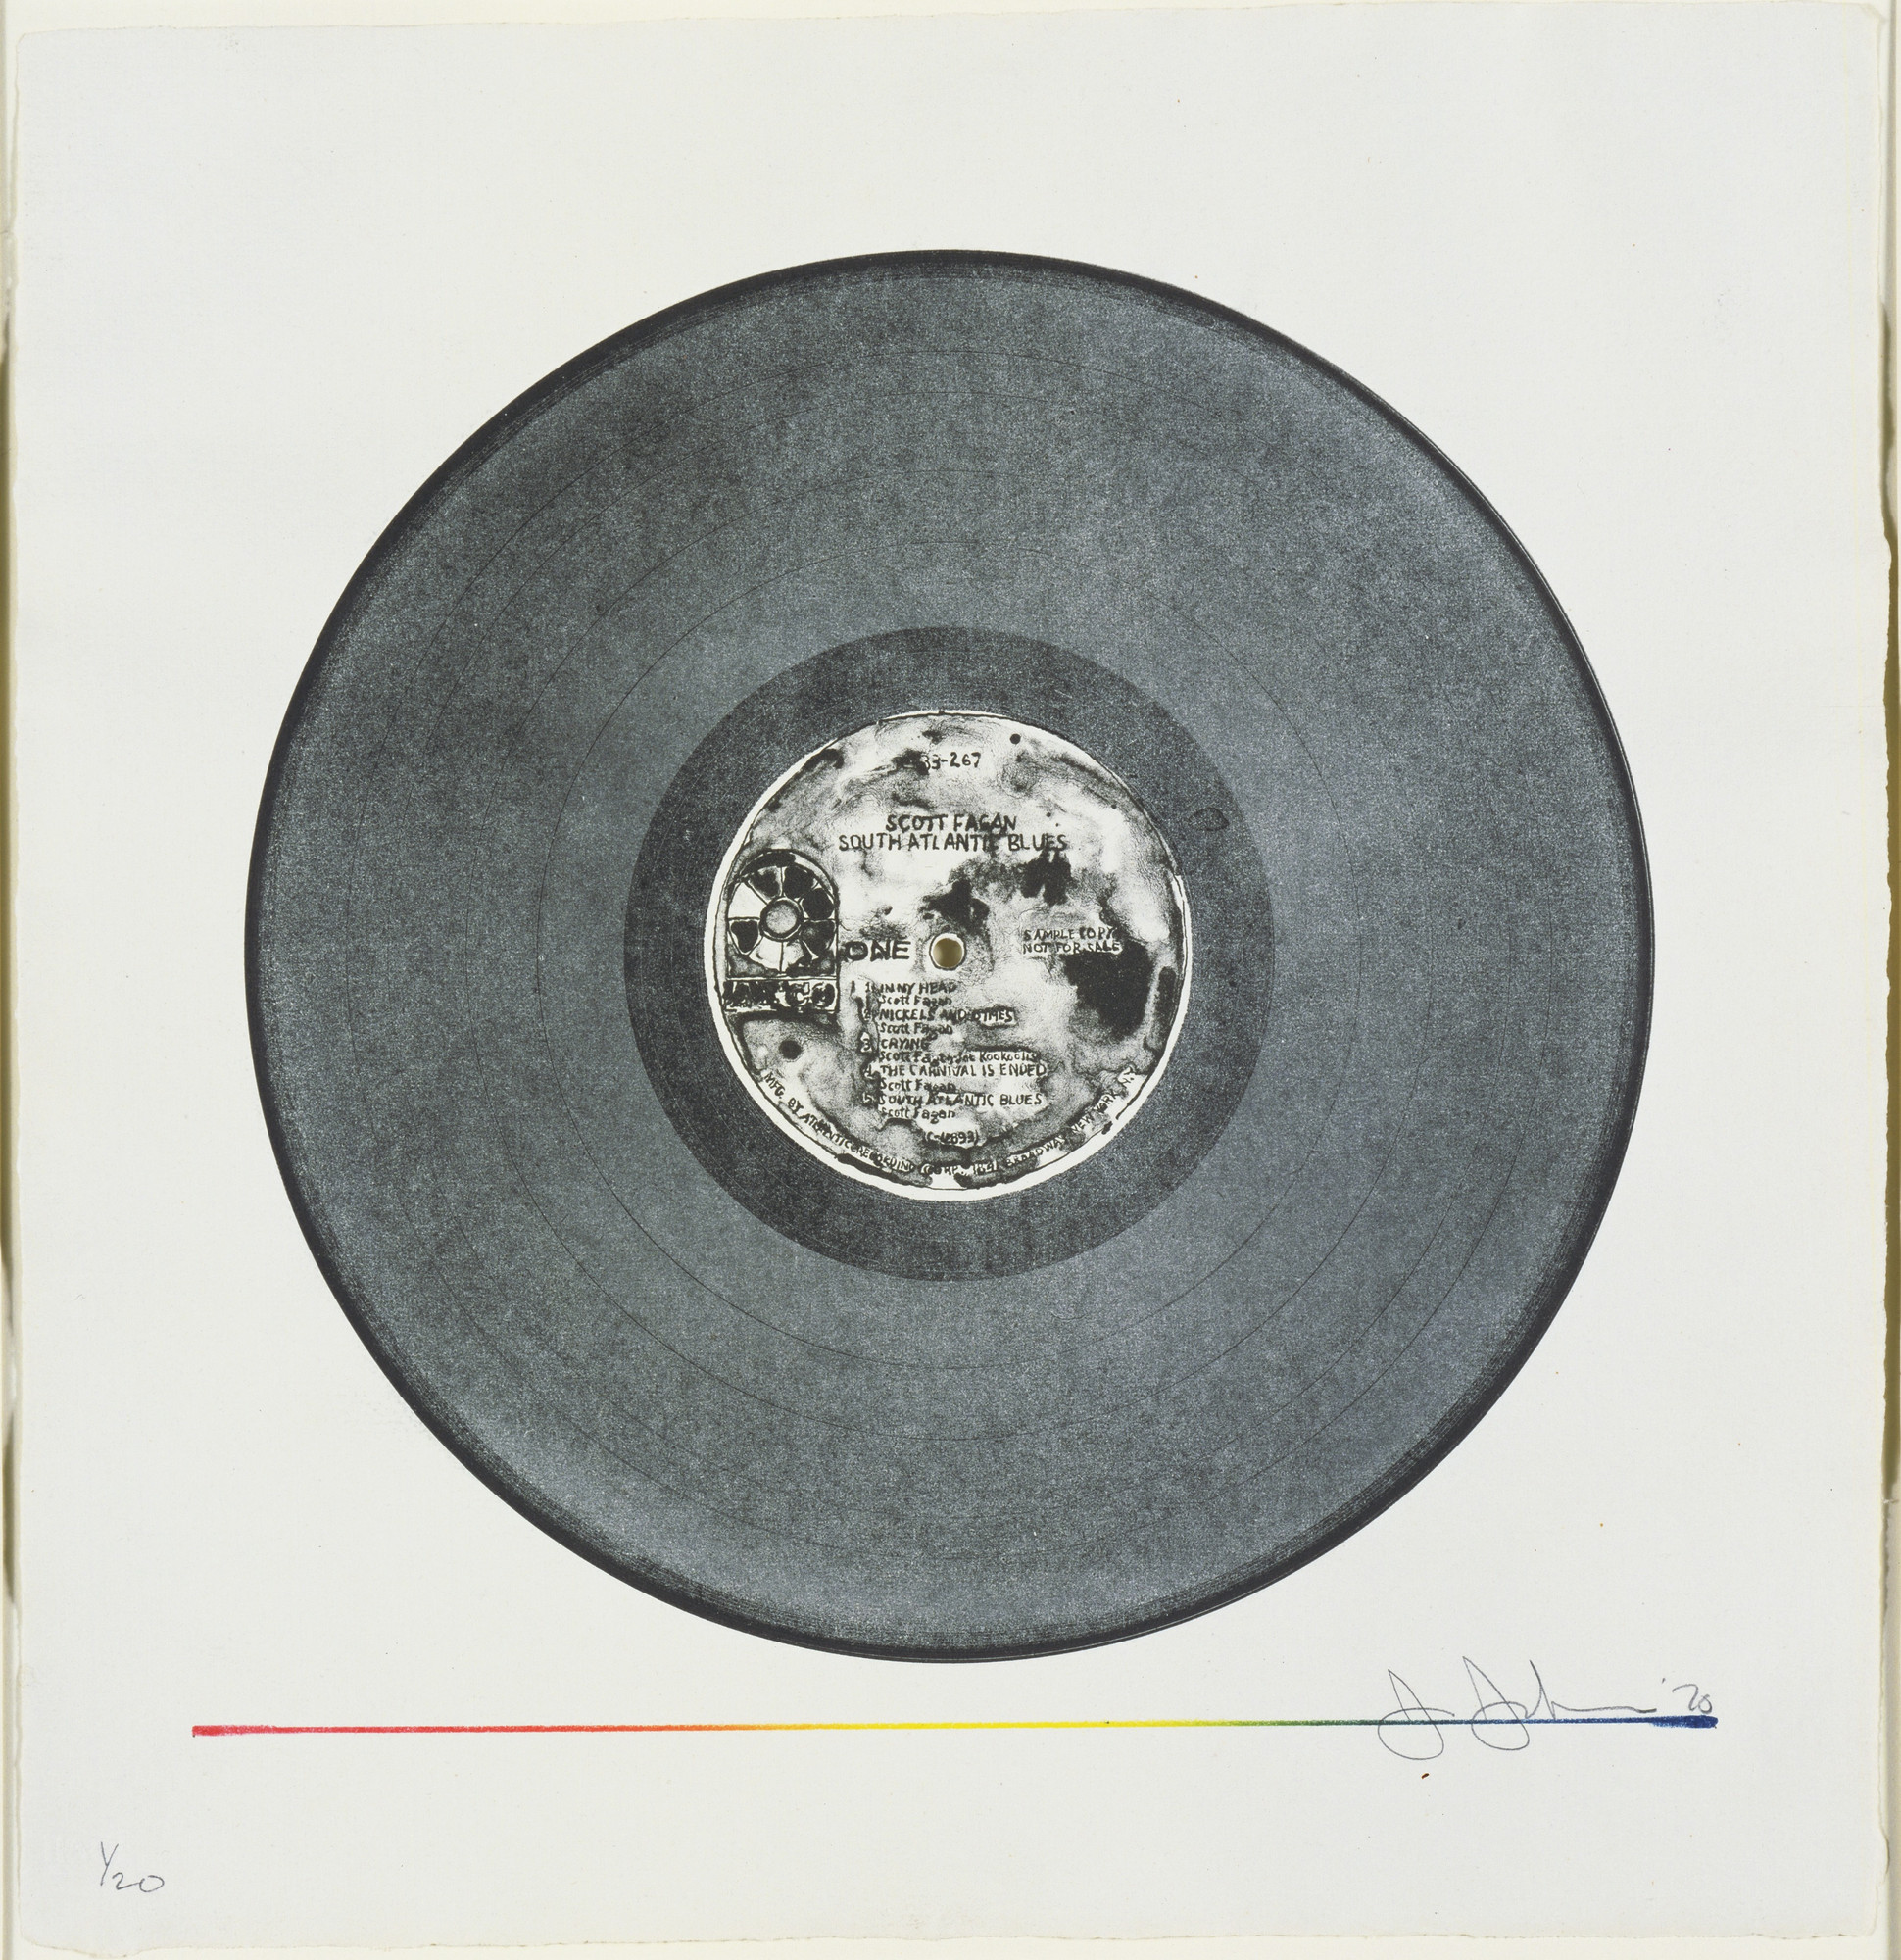 Jasper Johns. Scott Fagan Record. 1970